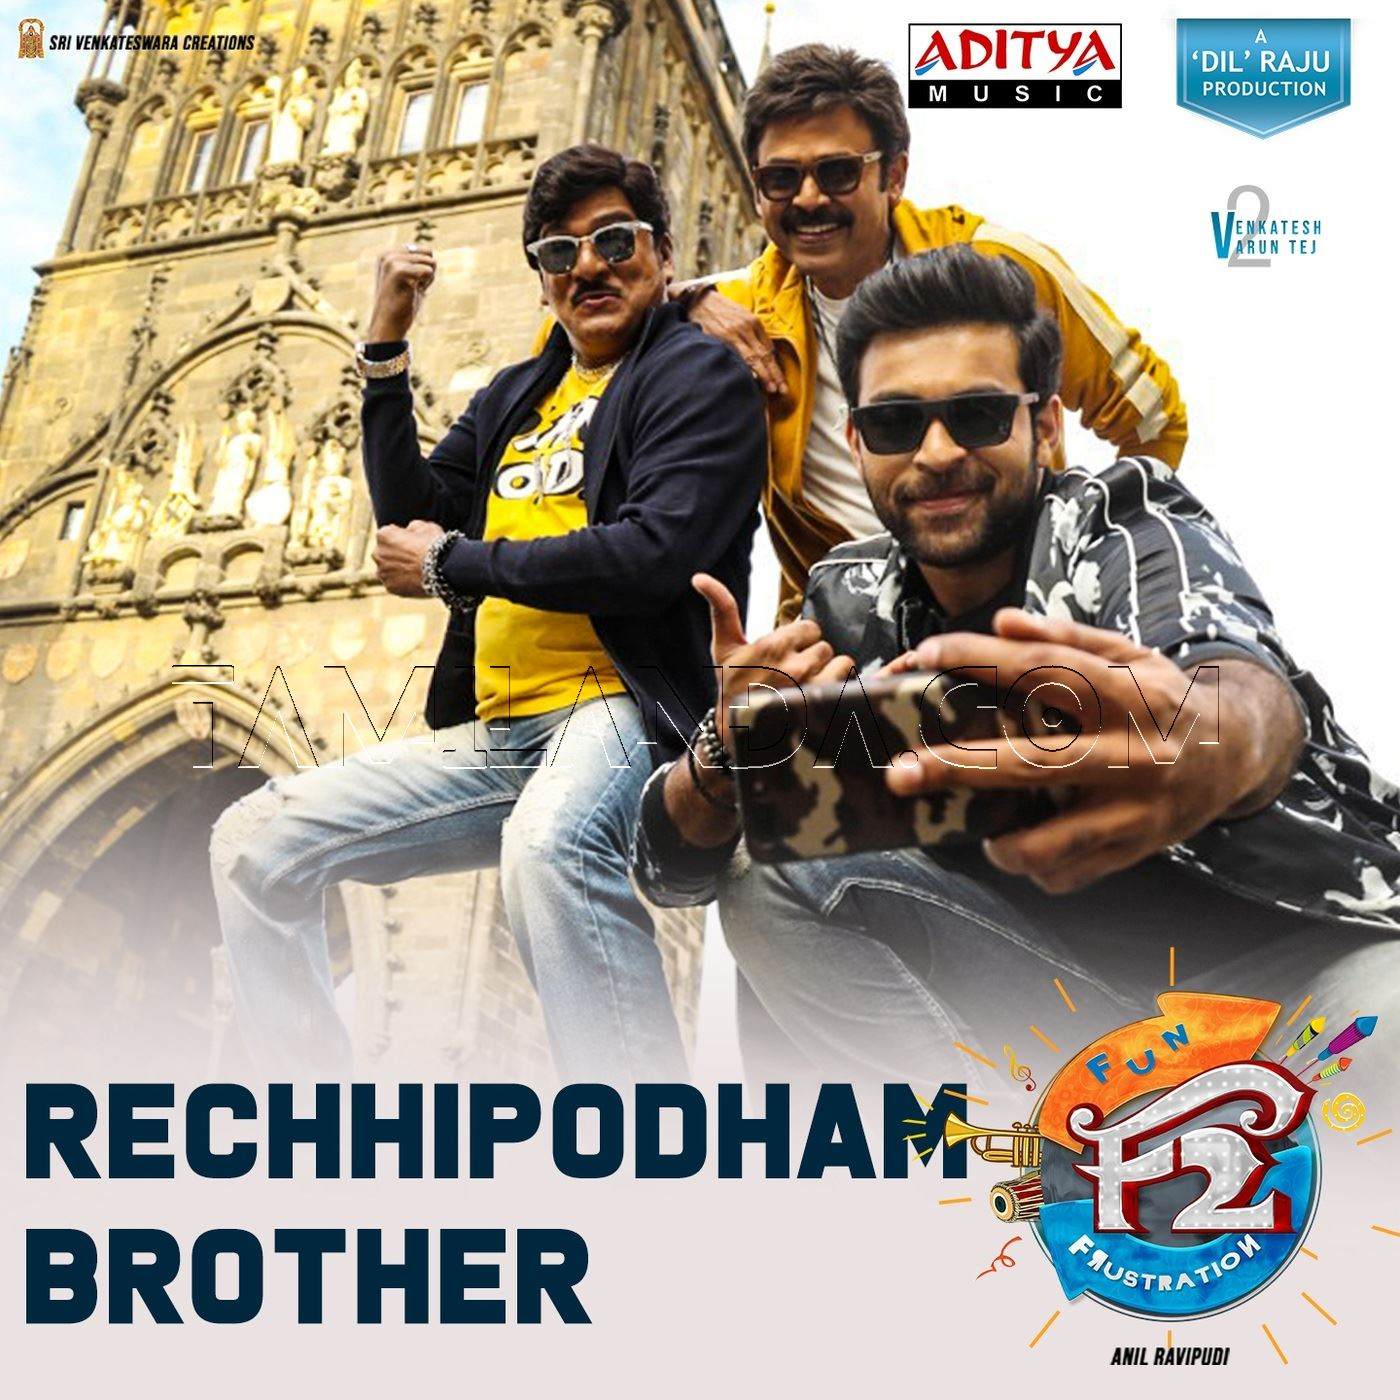 Rechhipodham Brother (From F2) – Single FLAC Song (2018)